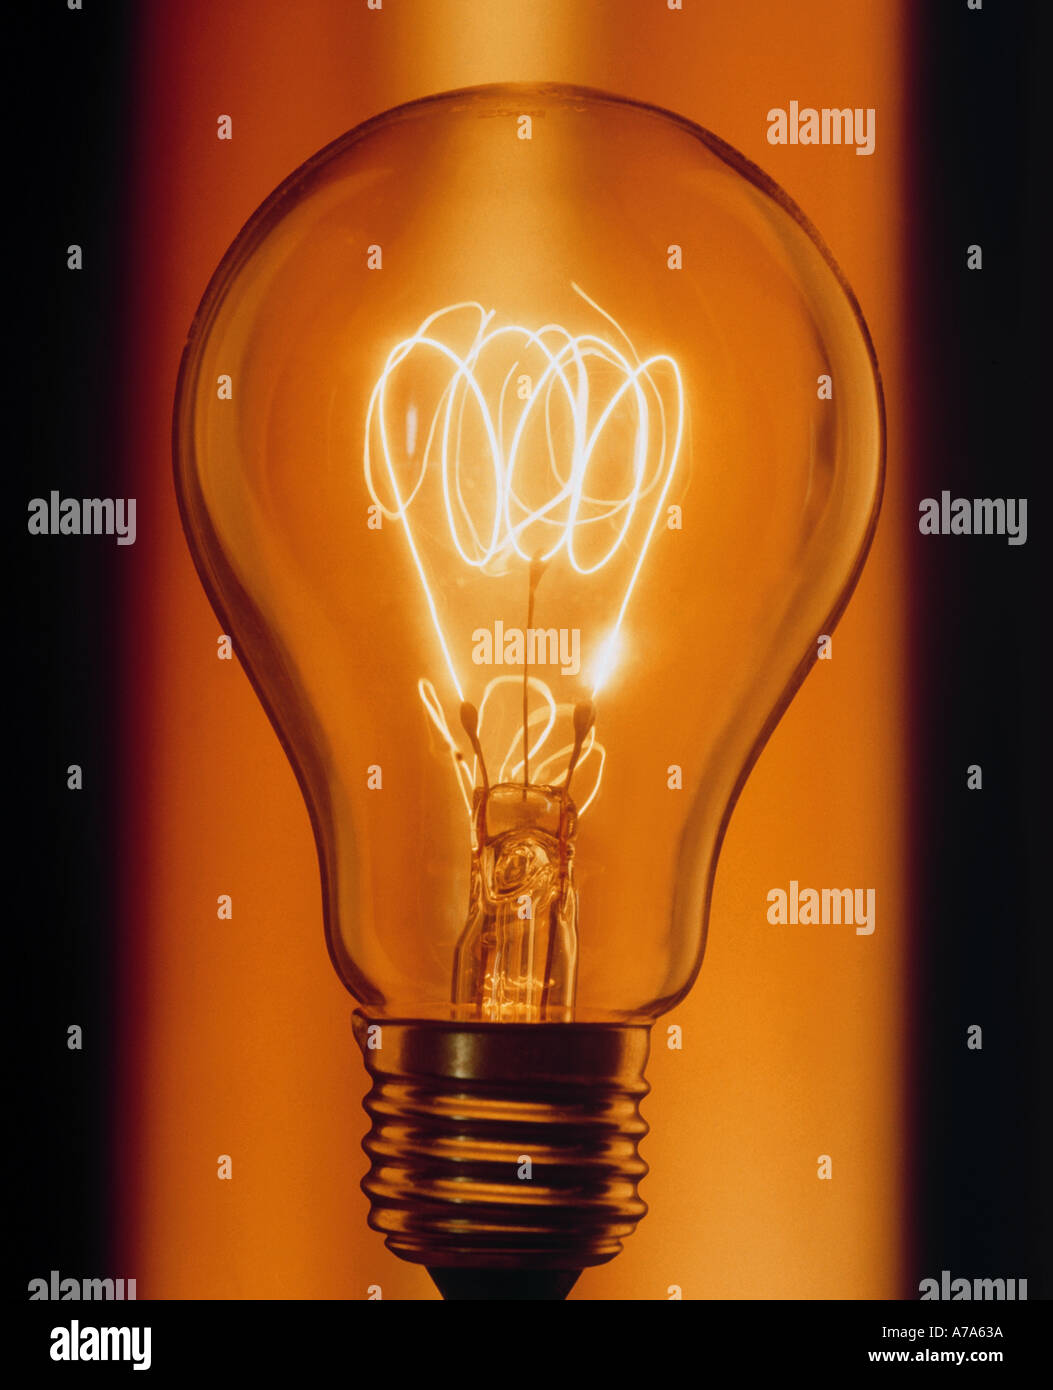 Electric Bulb - Stock Image